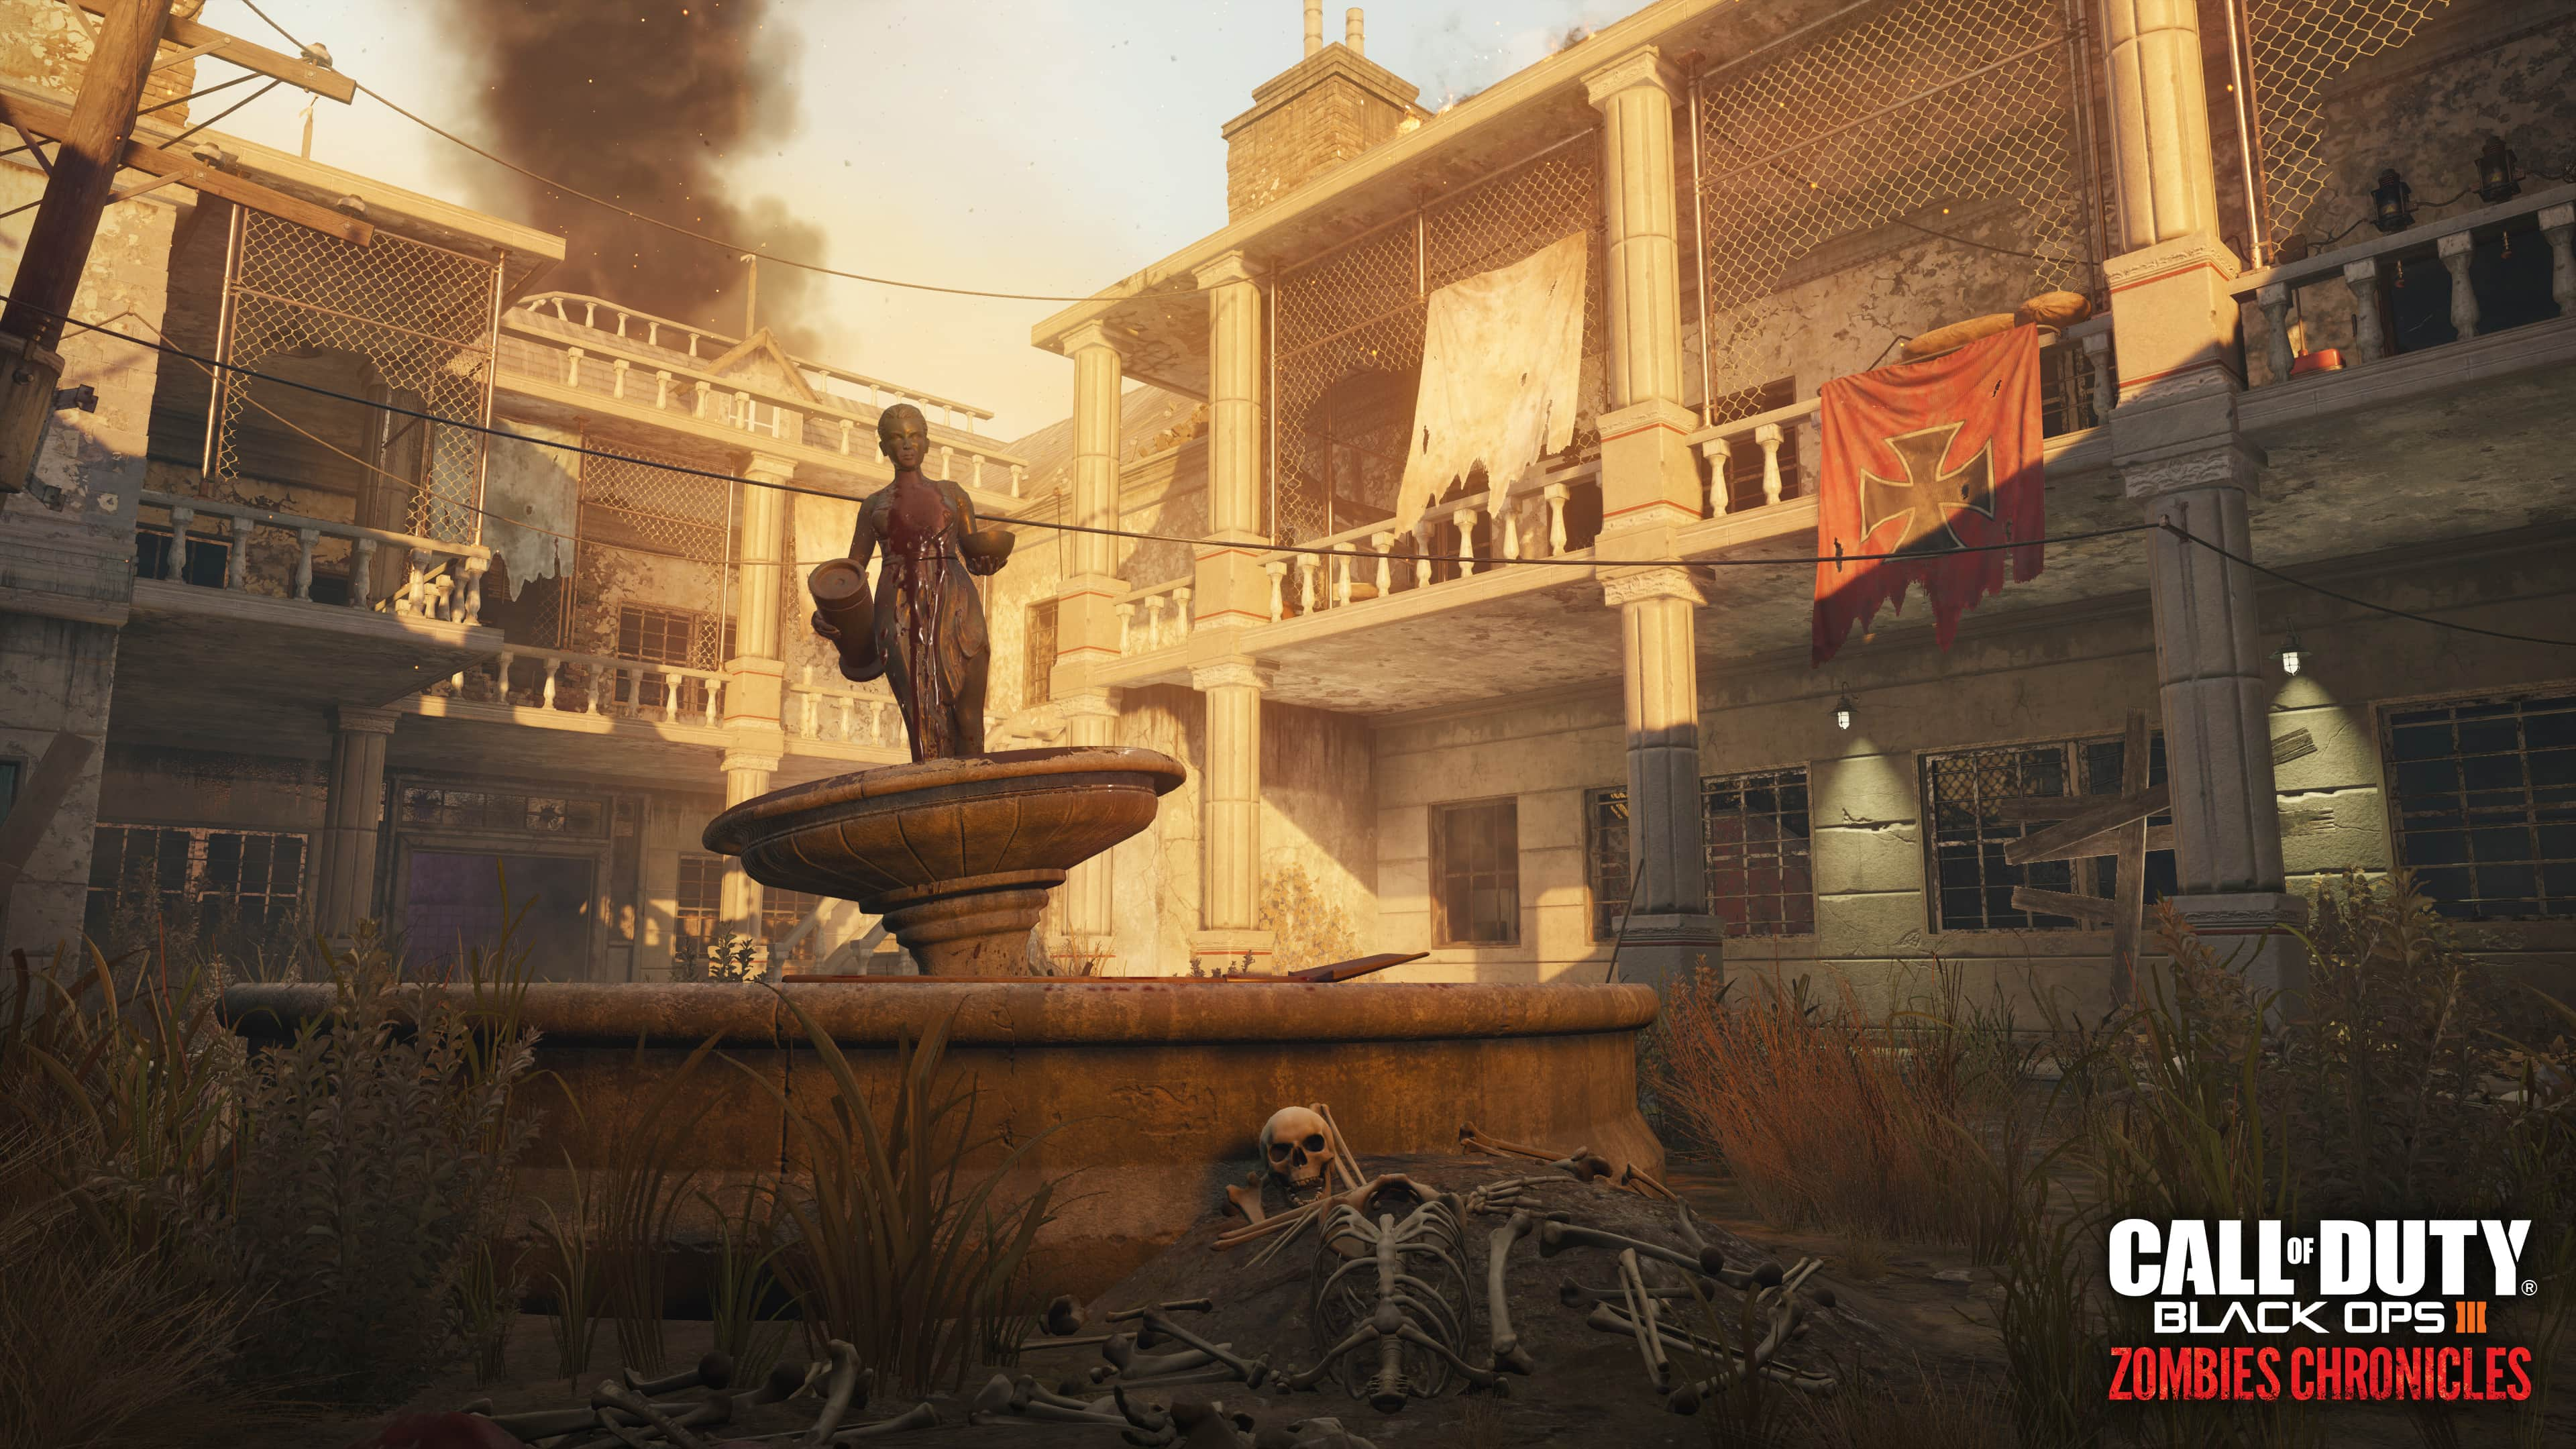 Call of Duty Black Ops III Zombies Chronicles_Verruckt map_environment shot